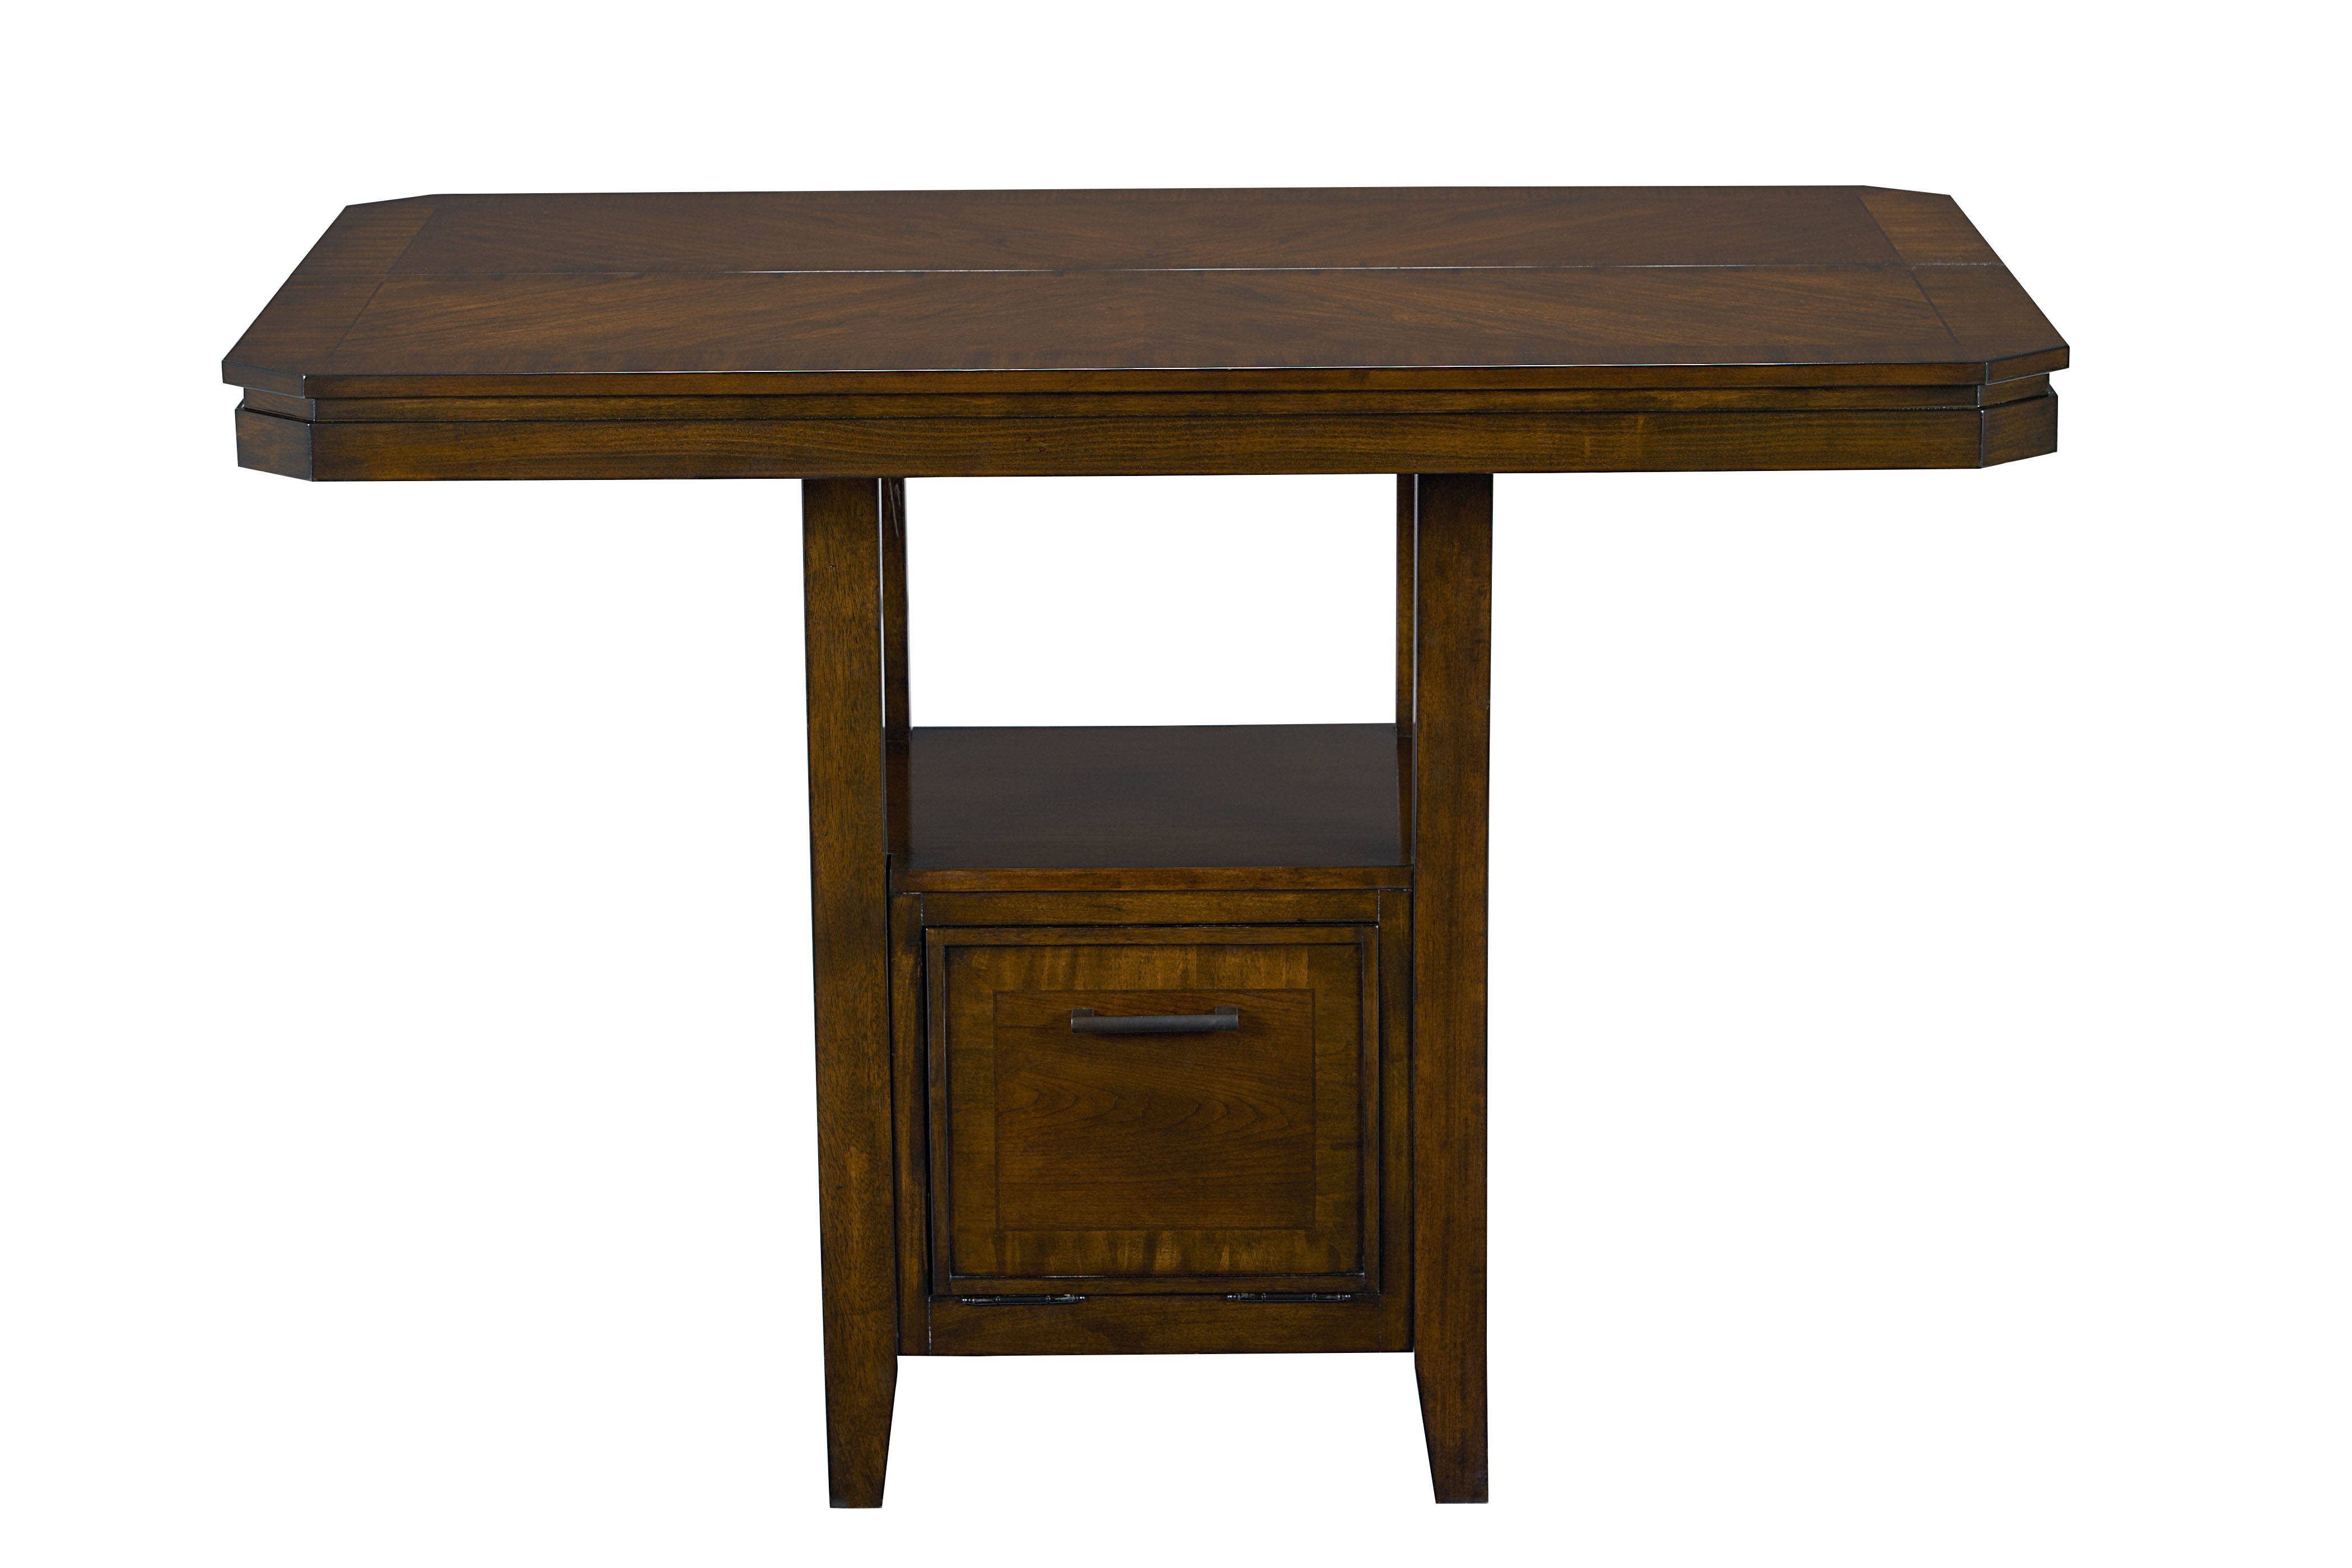 Standard Furniture Avion Counter Height Table The Classy